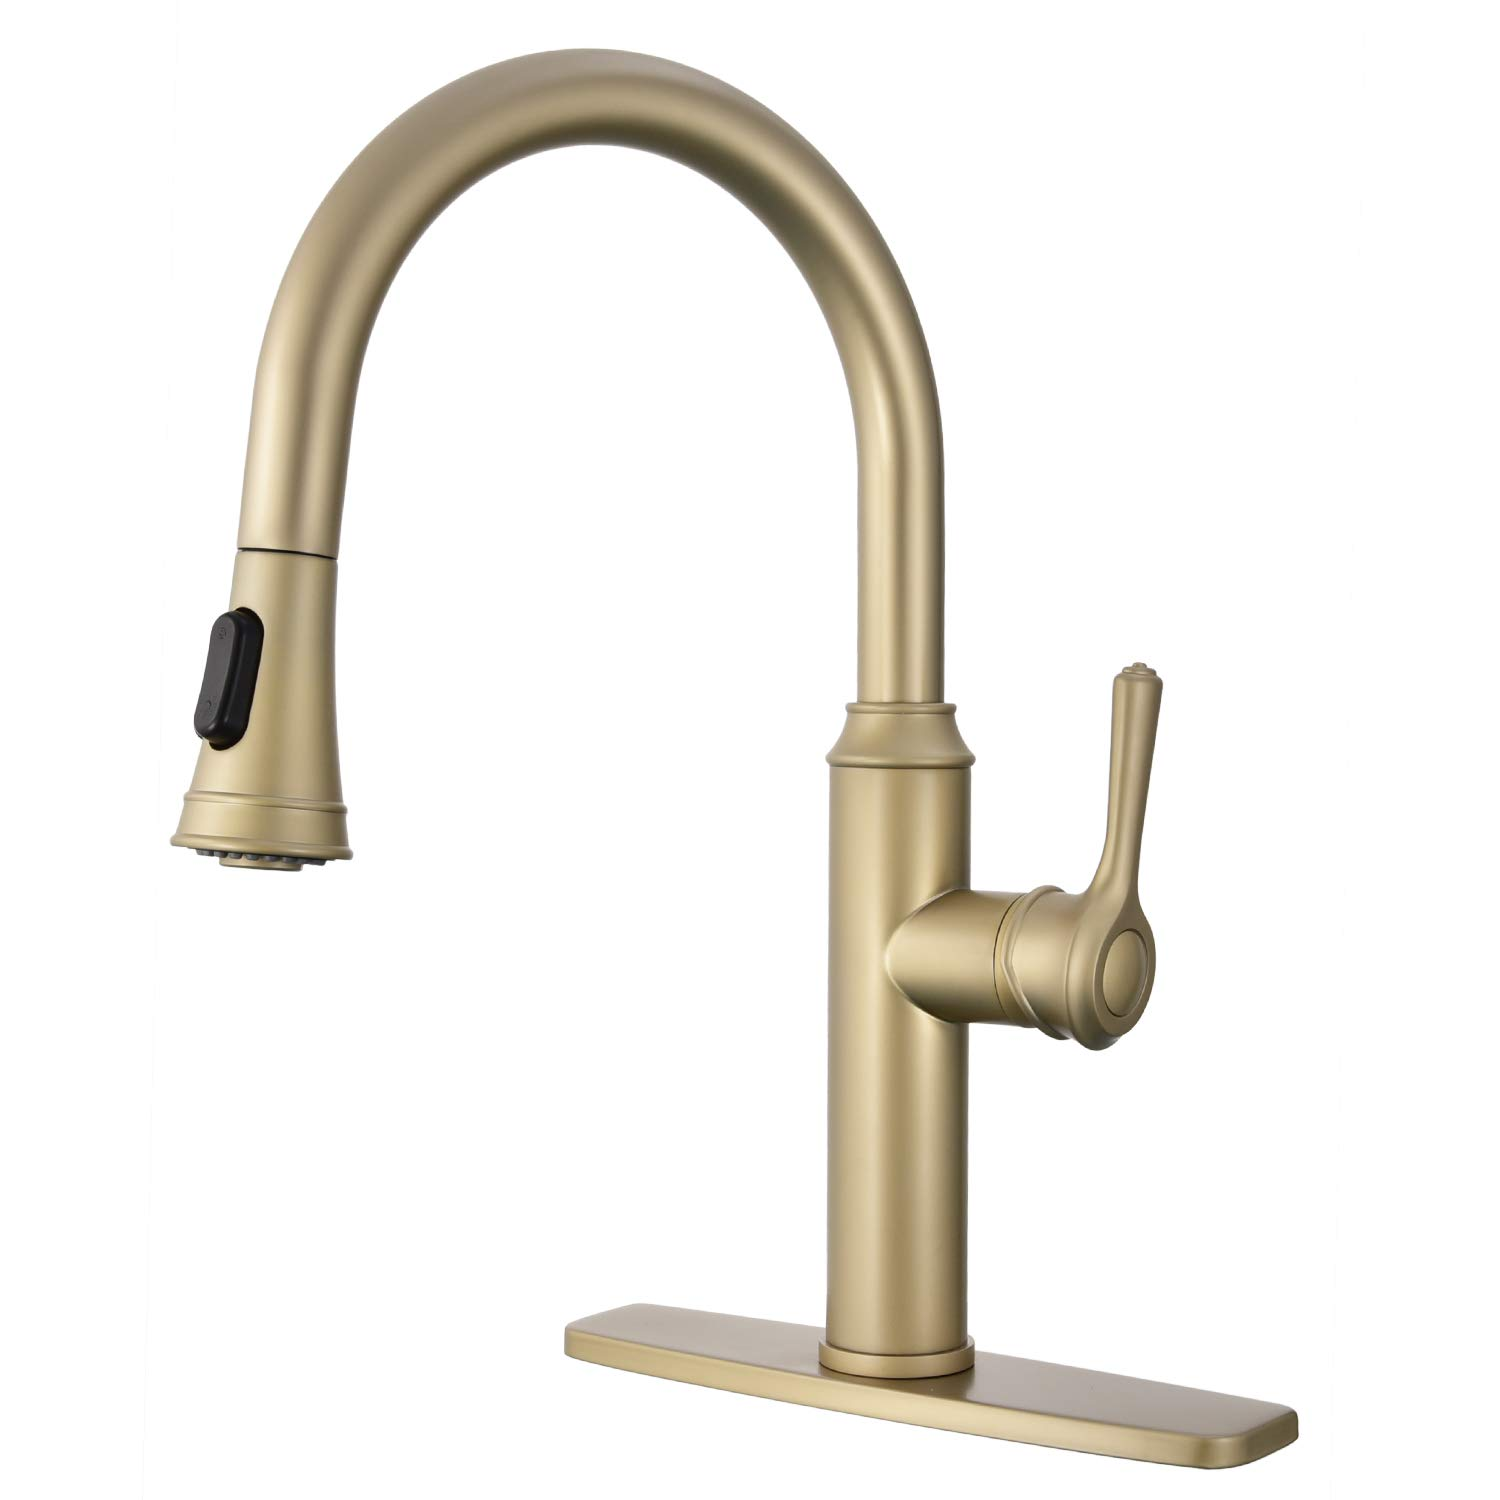 Peppermint Kitchen Sink Faucet Matte Champagne Bronze Single Handle with Pull Down Sprayer Matte Gold